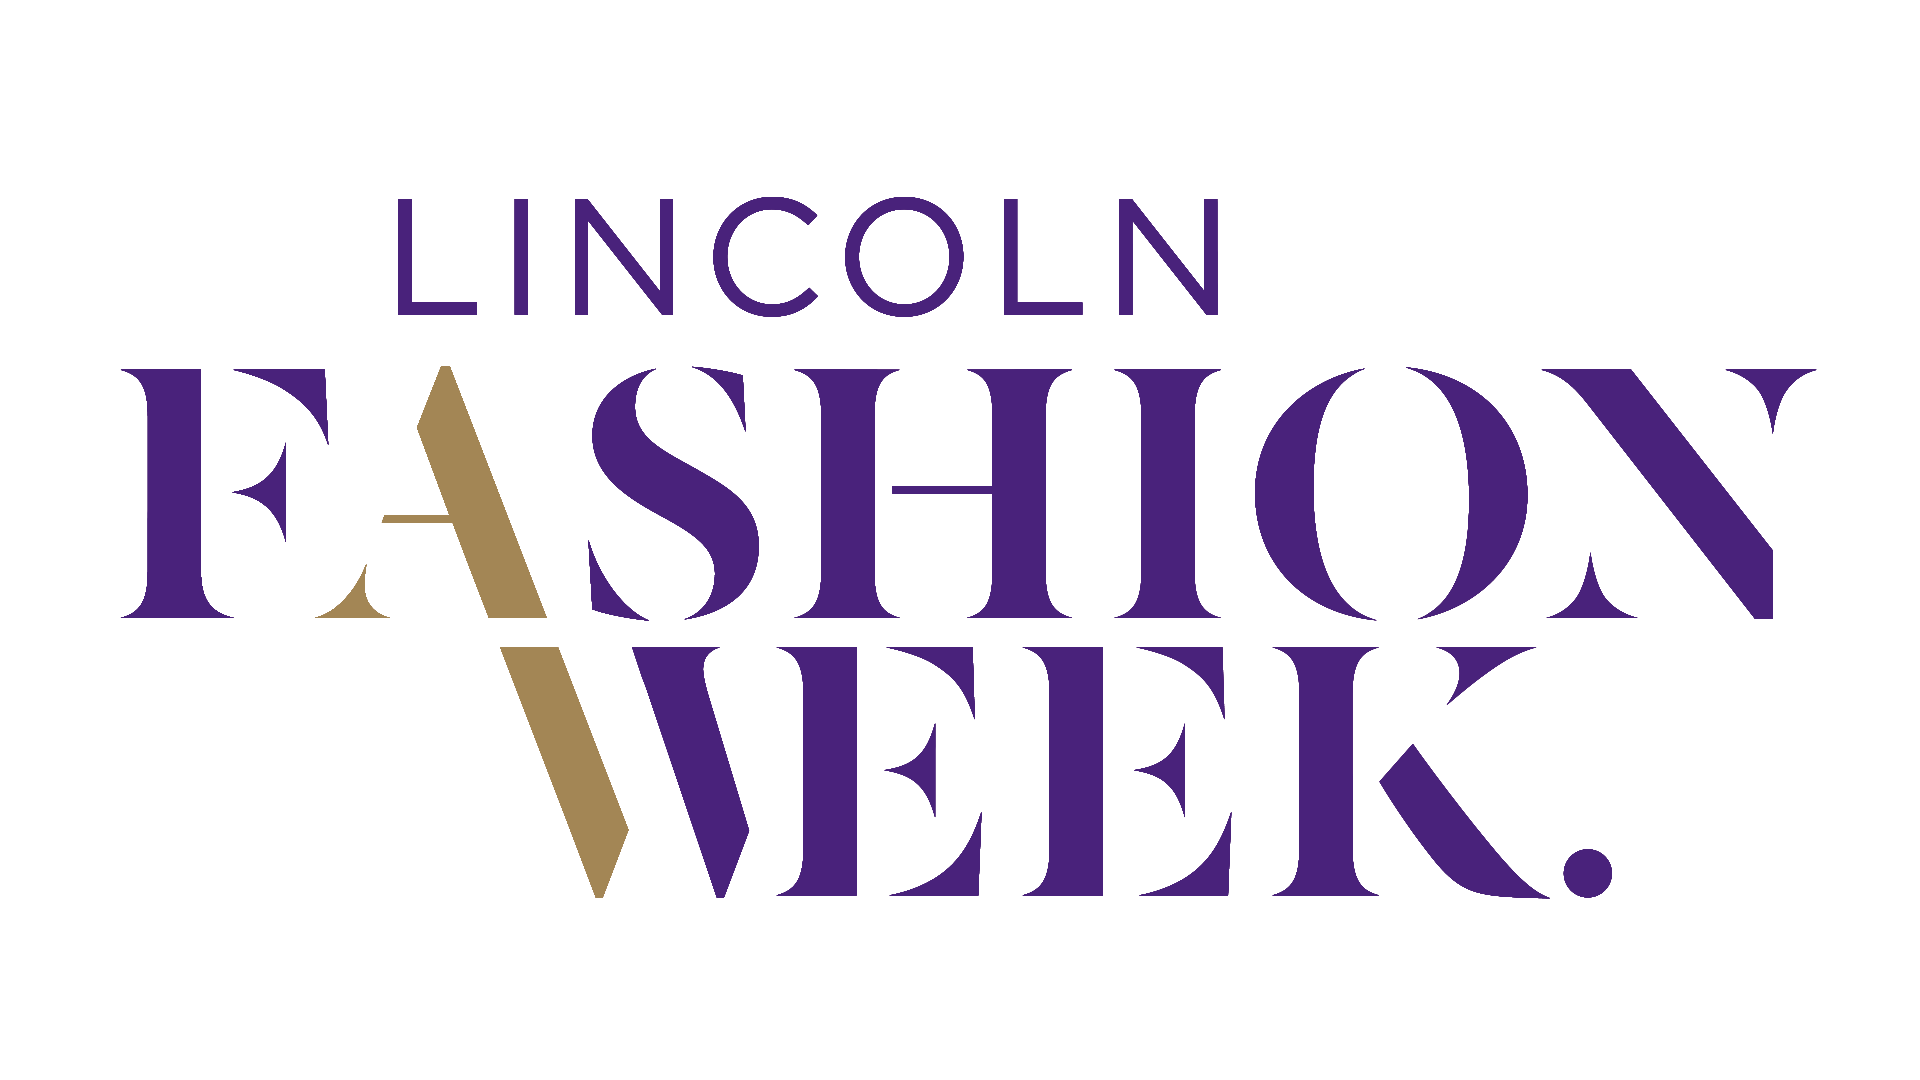 Lincoln Fashion Week